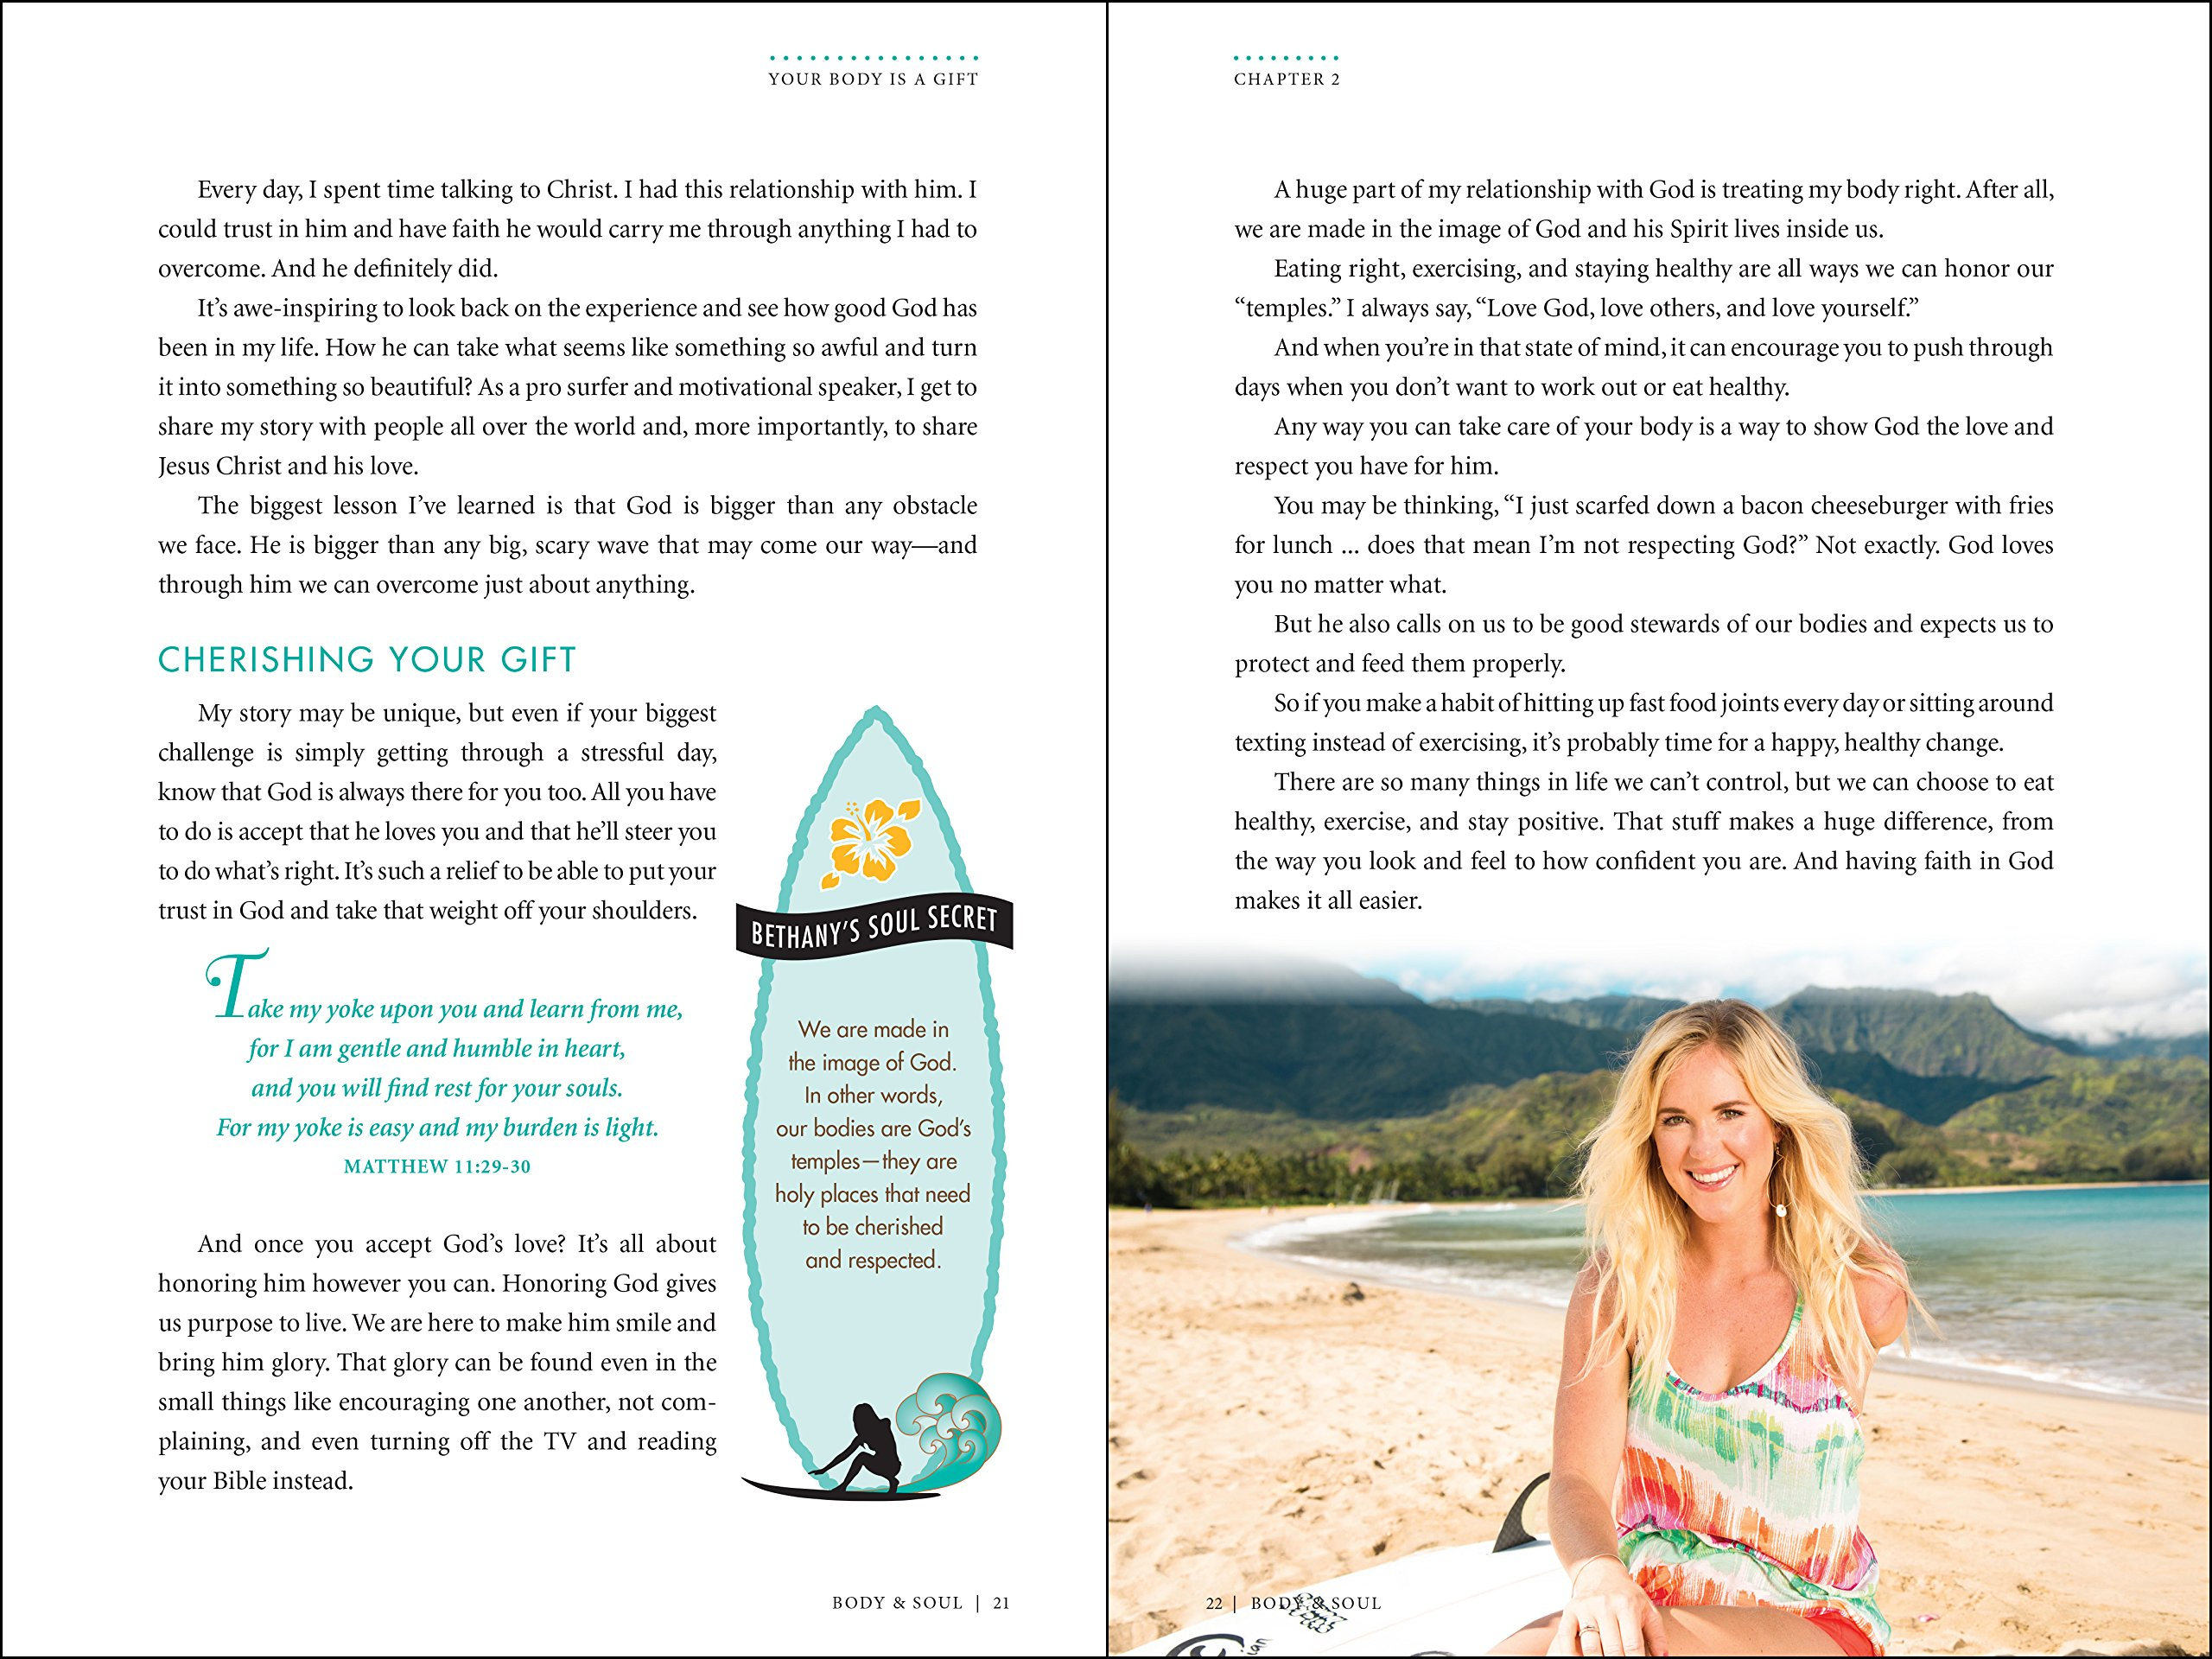 Body and Soul: A Girl's Guide to a Fit, Fun and Fabulous Life: Bethany  Hamilton, Dustin Dillberg: 0025986731052: Amazon.com: Books